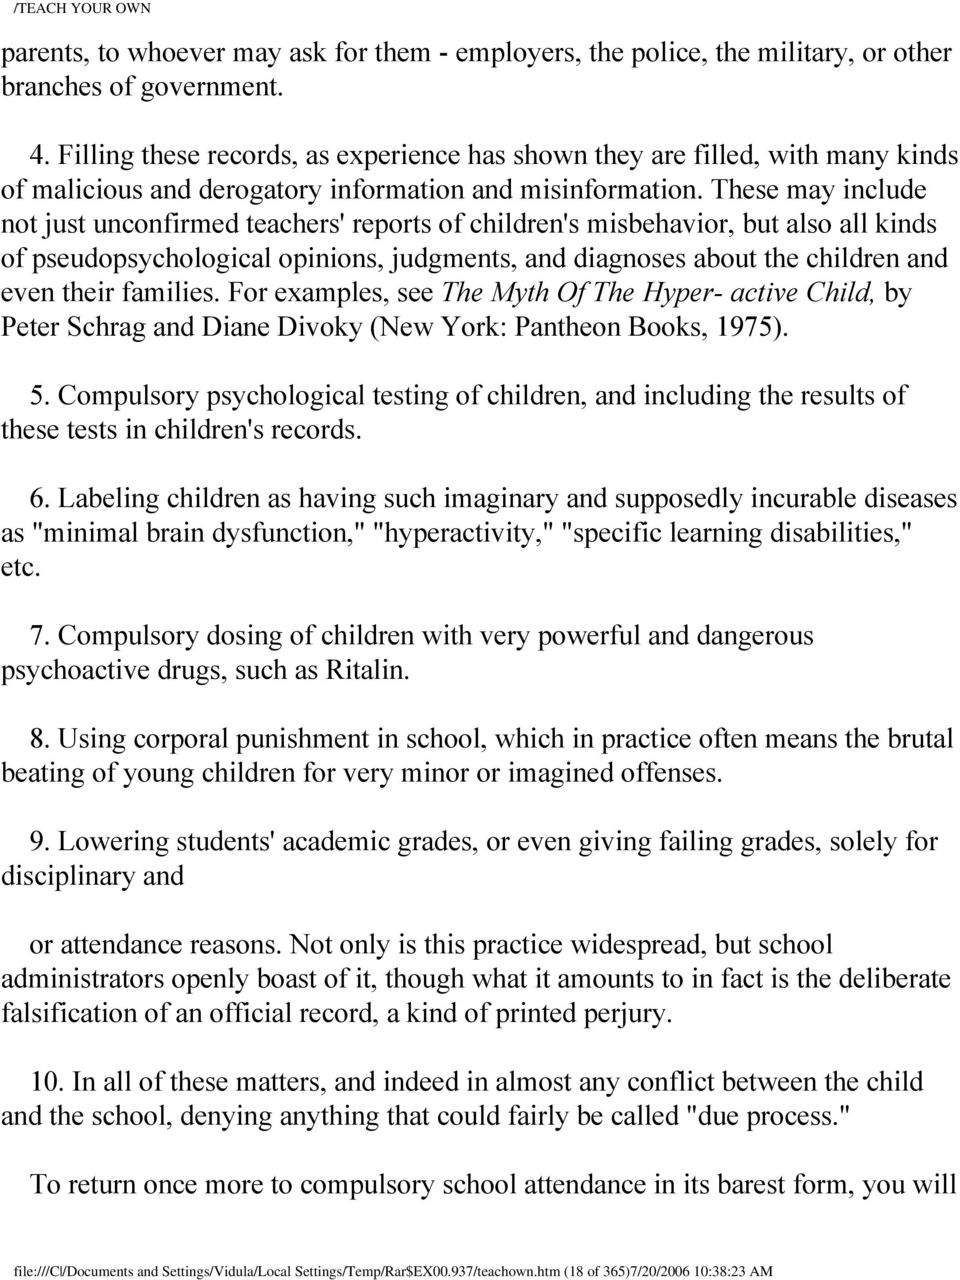 These may include not just unconfirmed teachers' reports of children's misbehavior, but also all kinds of pseudopsychological opinions, judgments, and diagnoses about the children and even their